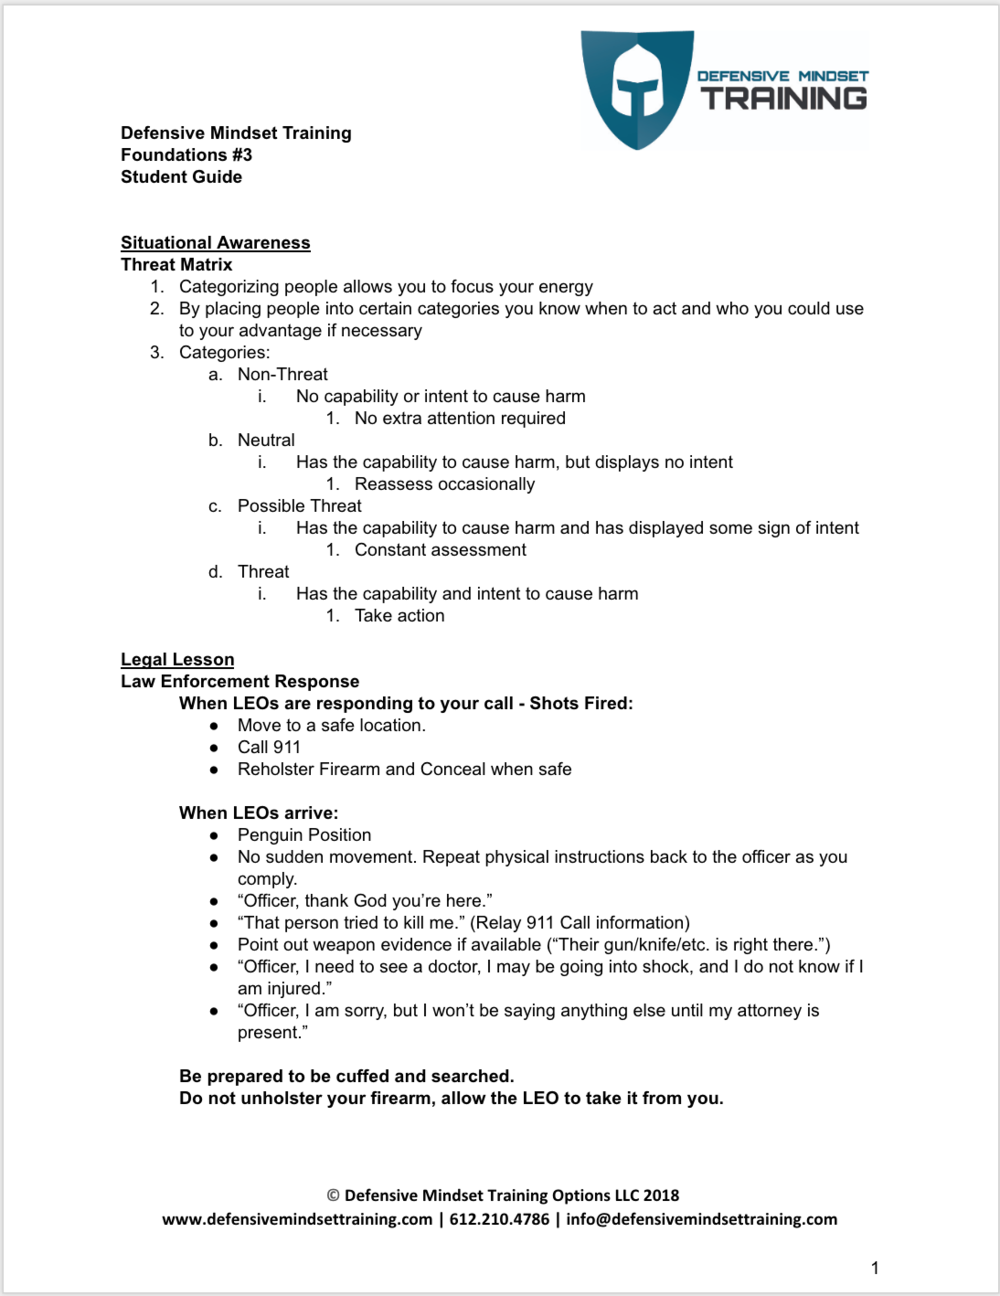 Week 3 Student Guide p 1